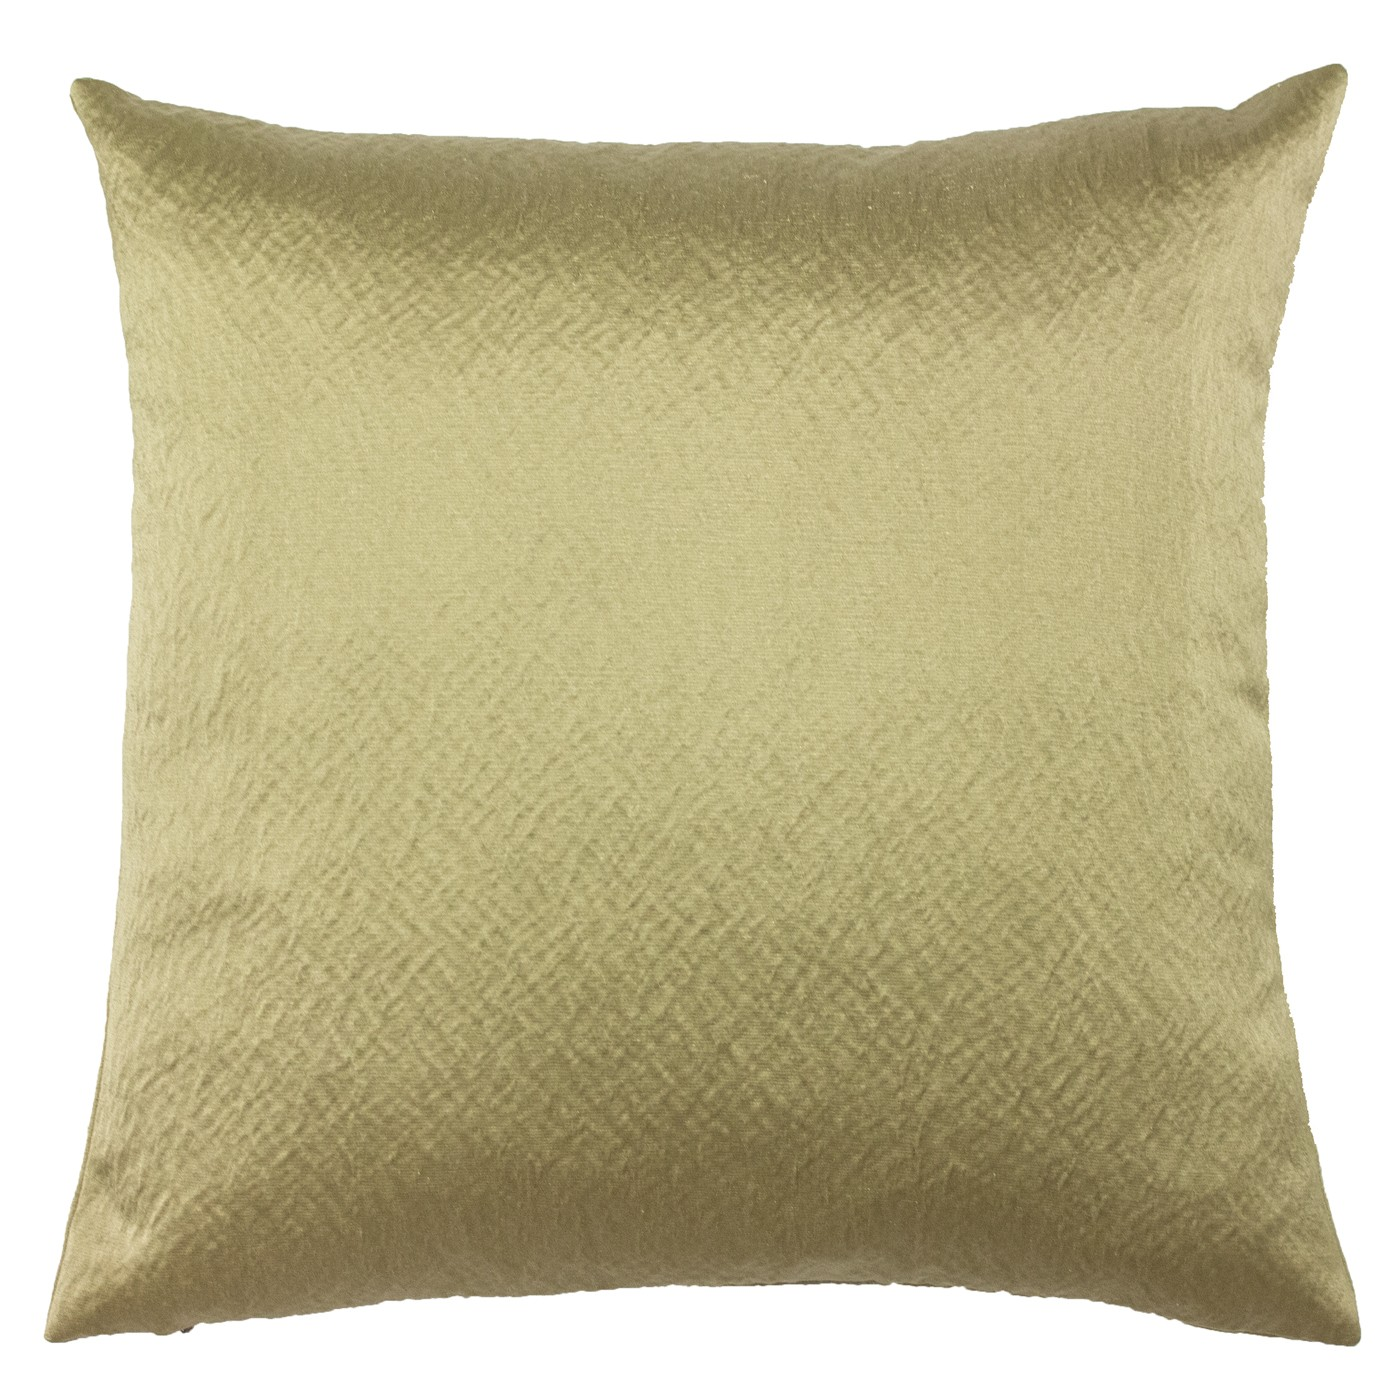 The Home Furnishings Company Palermo Gold Dust Cushion Cushion 45x45cms